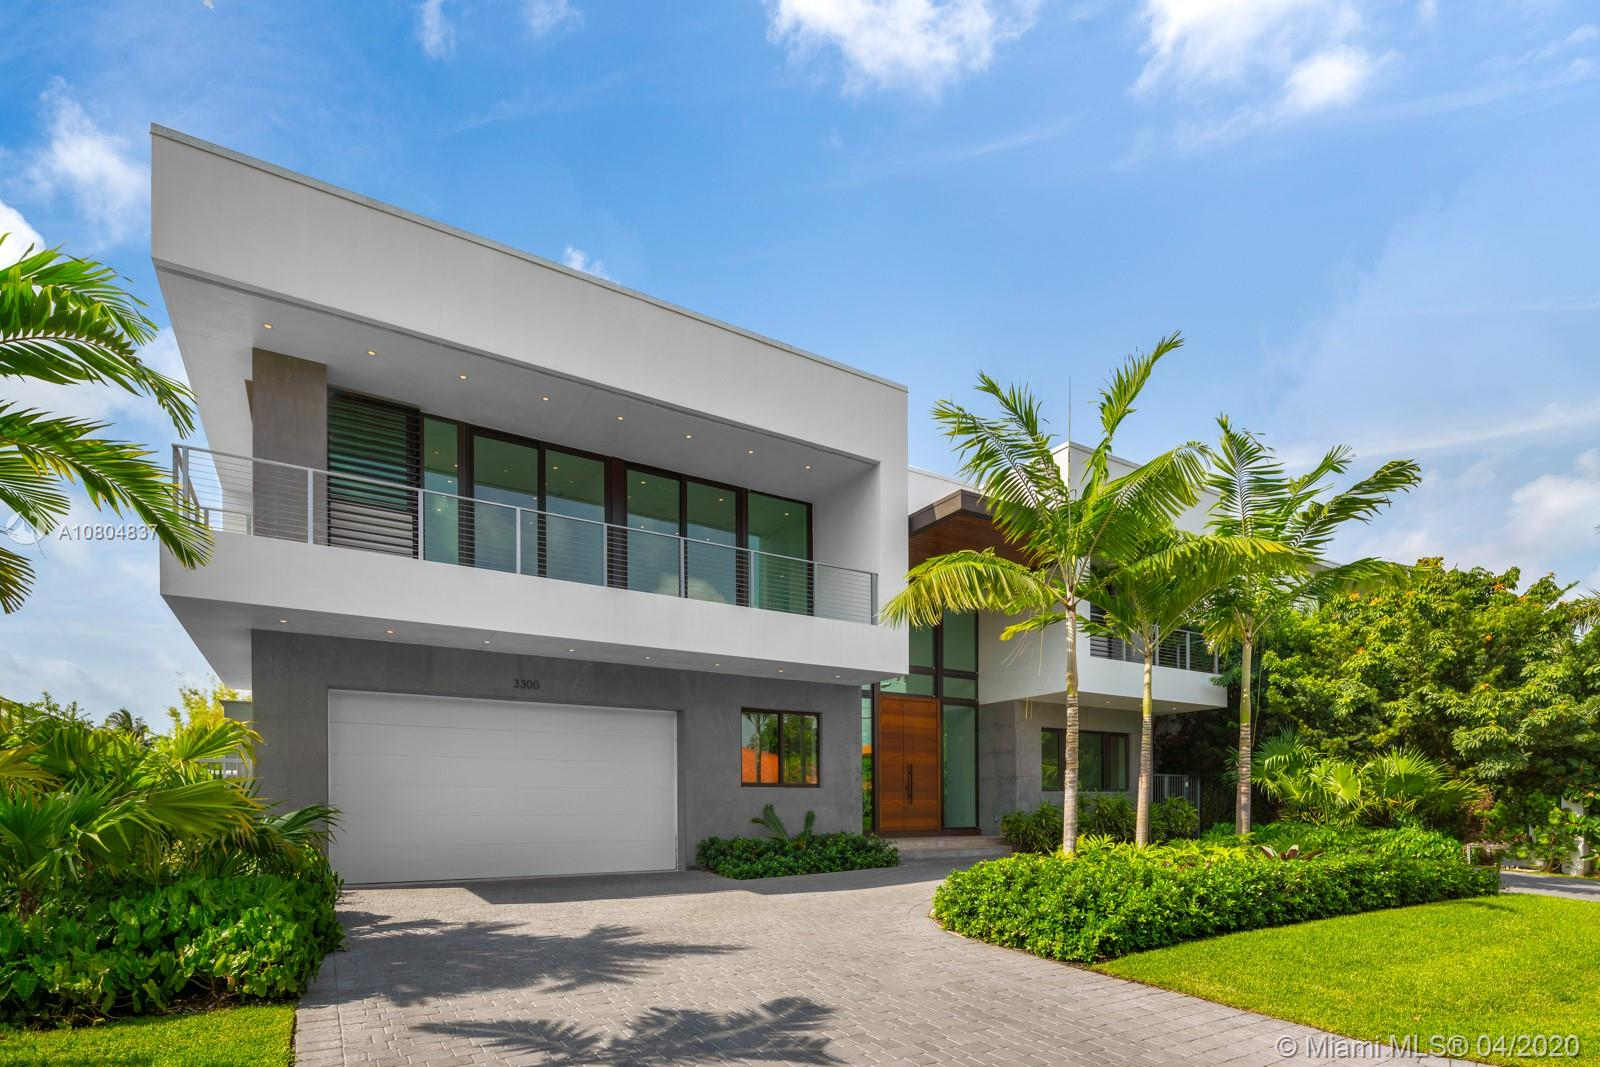 3300 NE 165th st - North Miami Beach, Florida